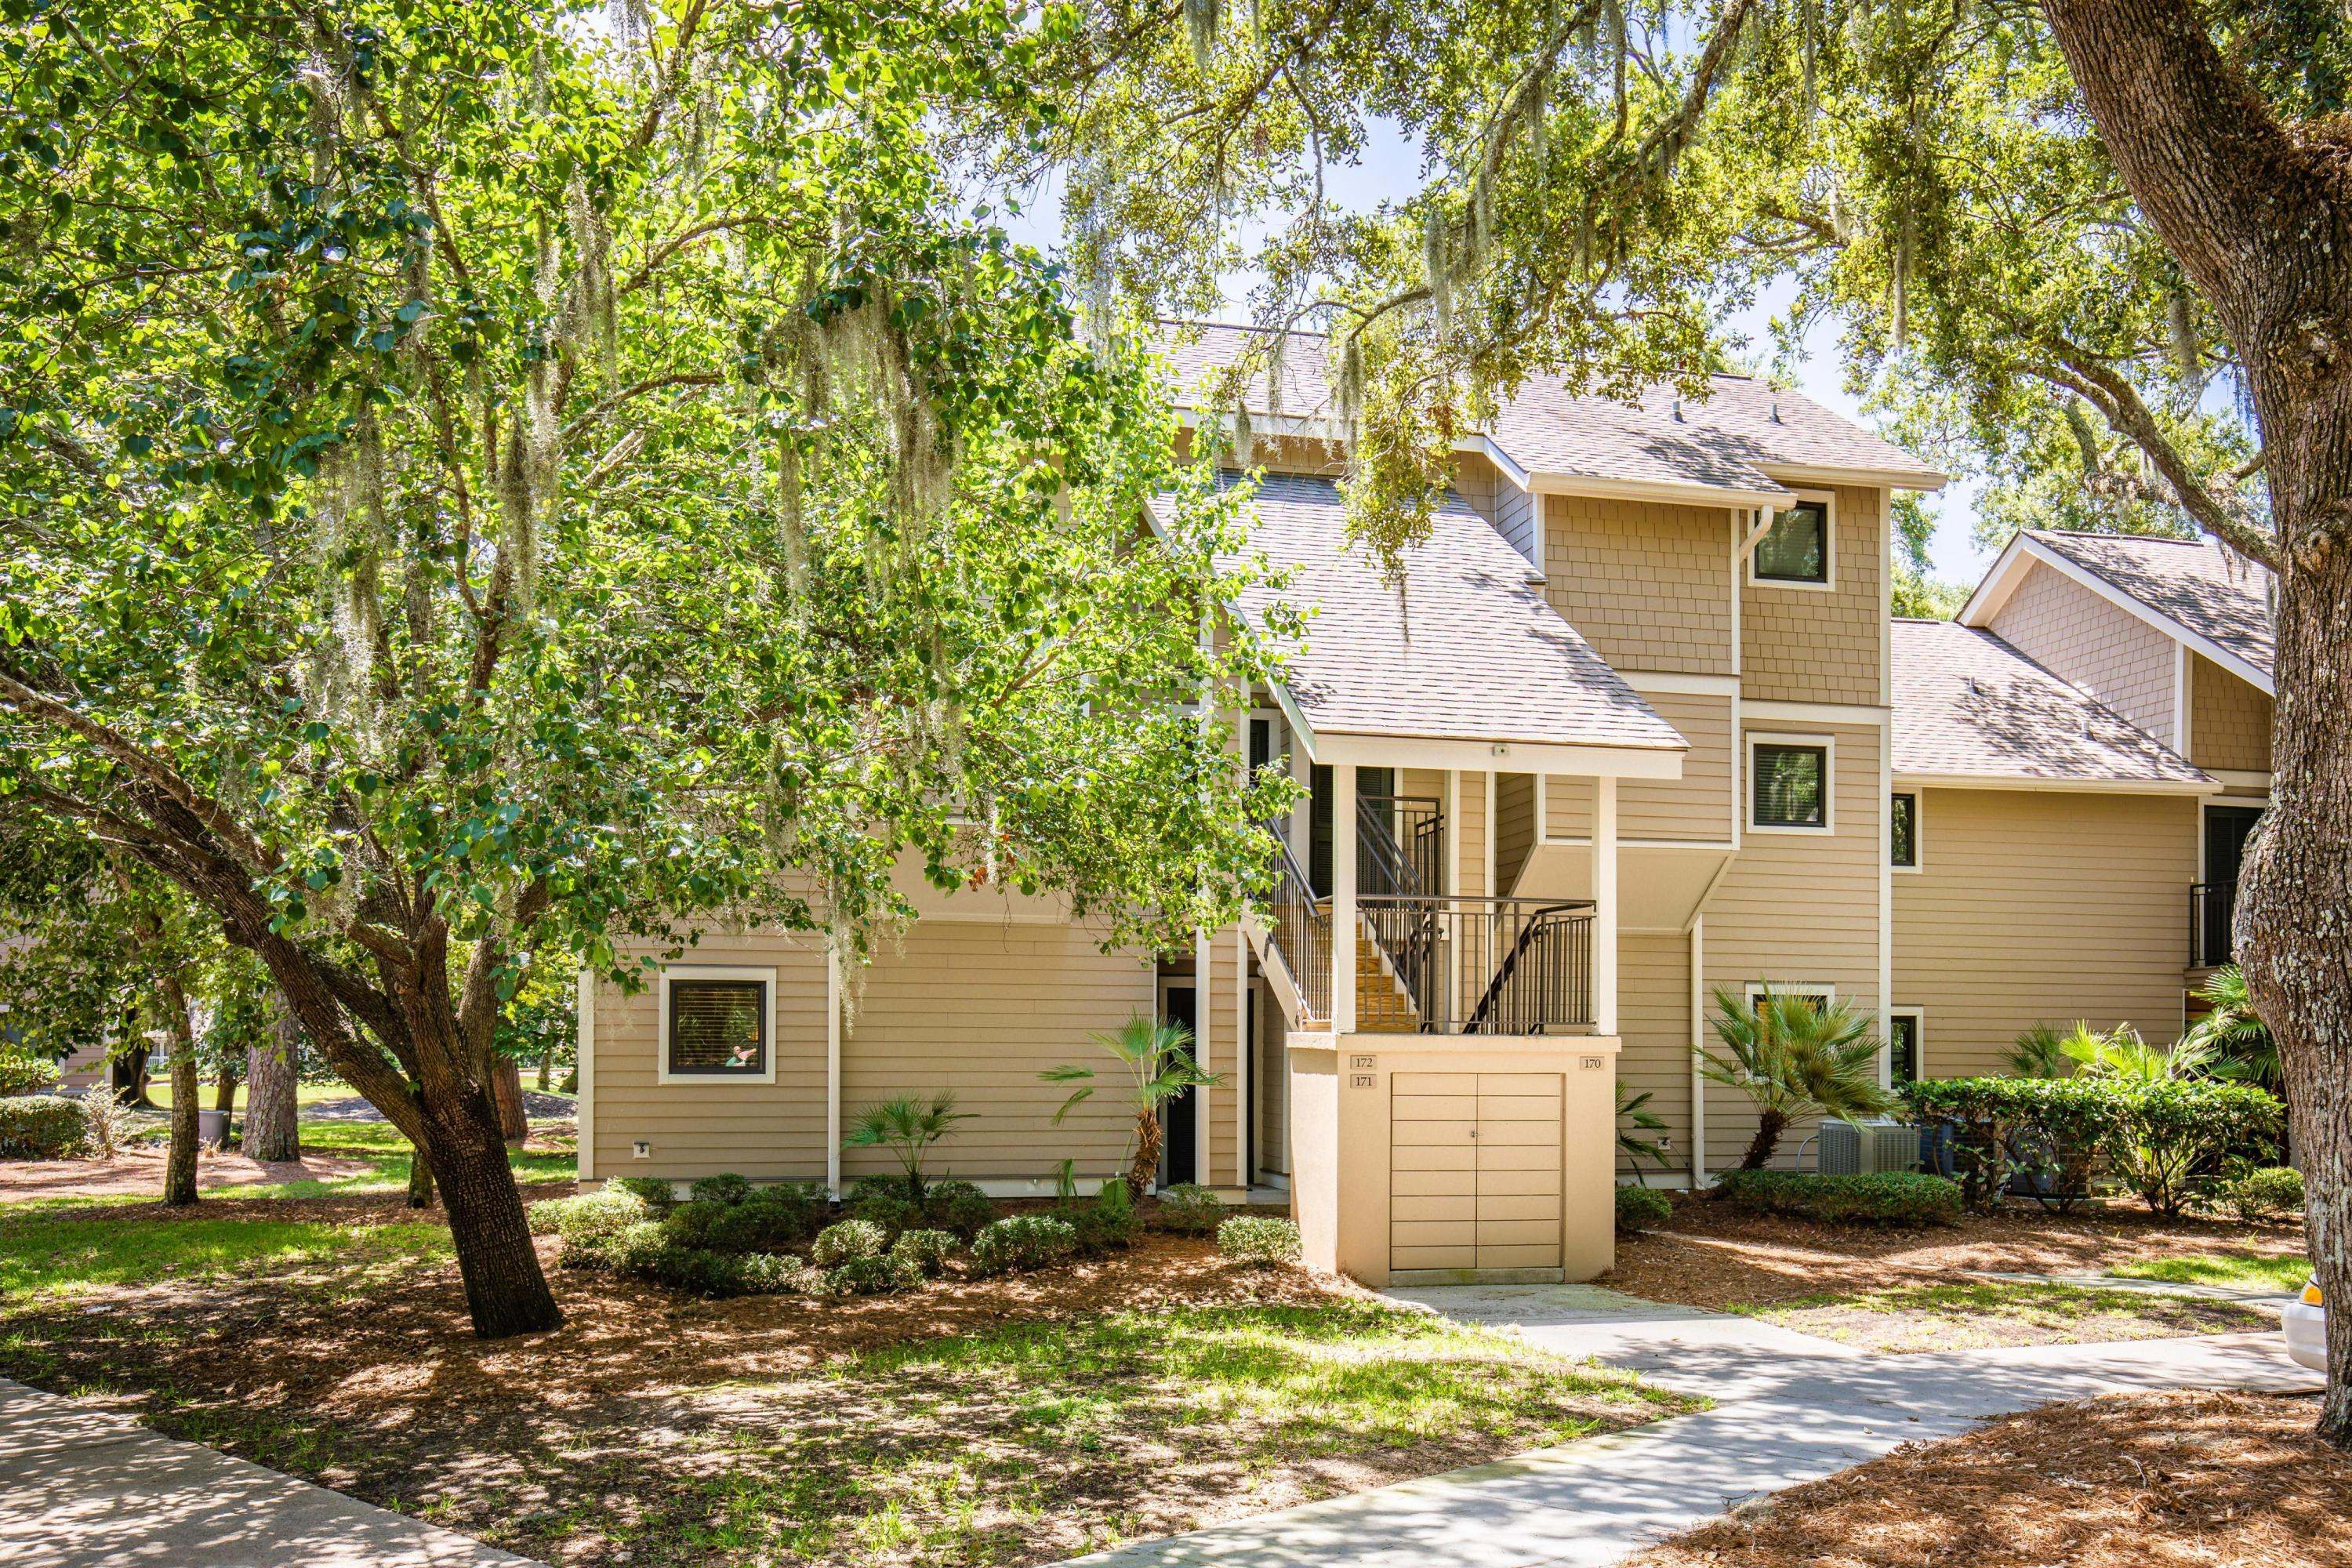 171 High Hammock Road Seabrook Island, SC 29455